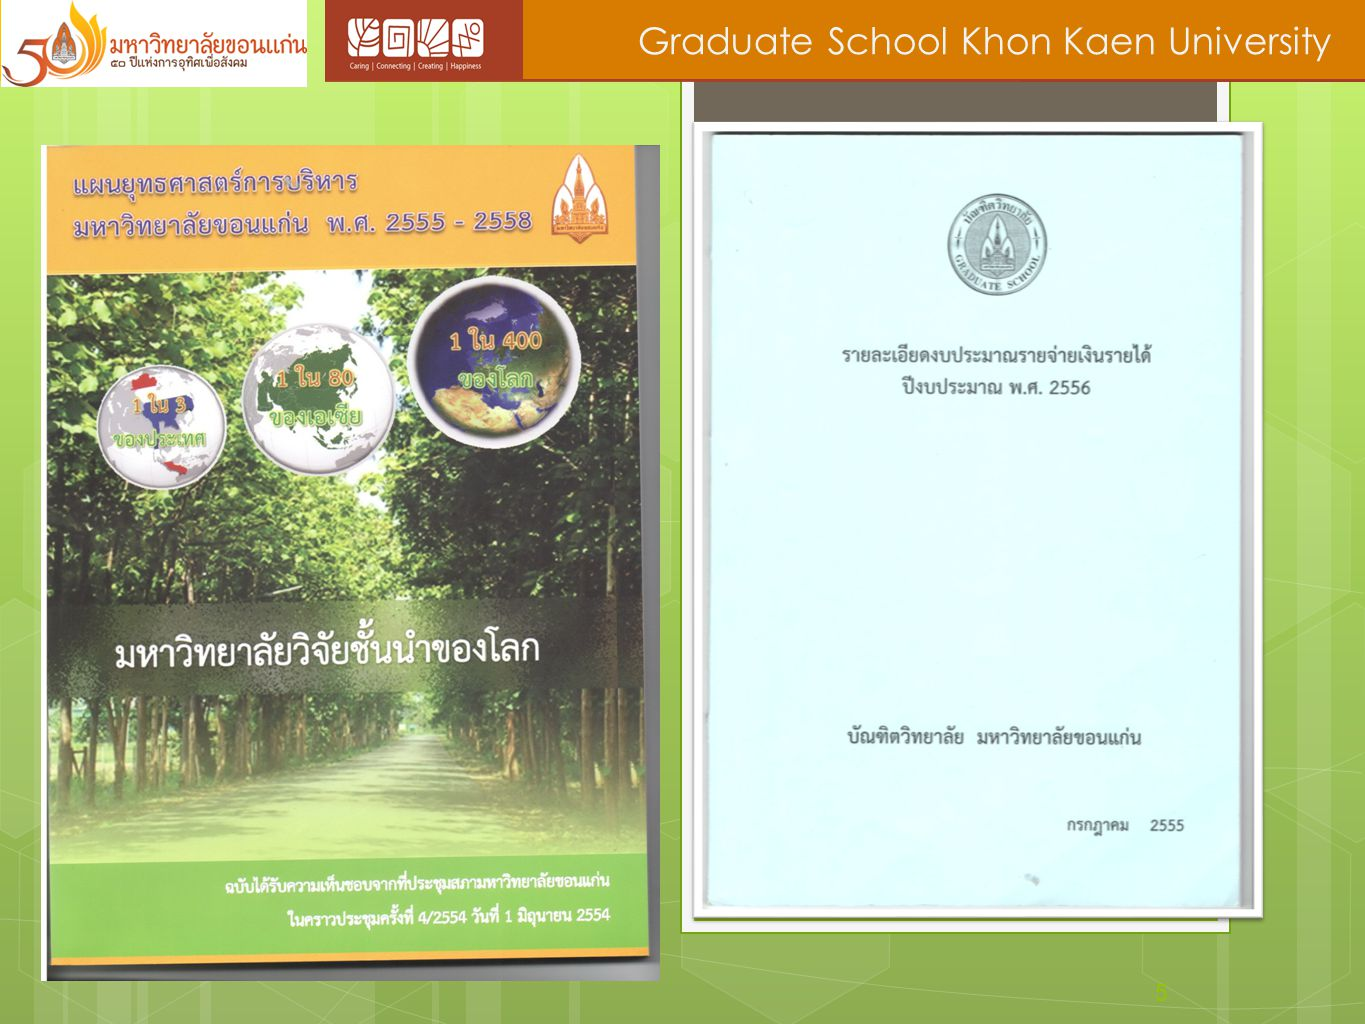 5 Graduate School Khon Kaen University